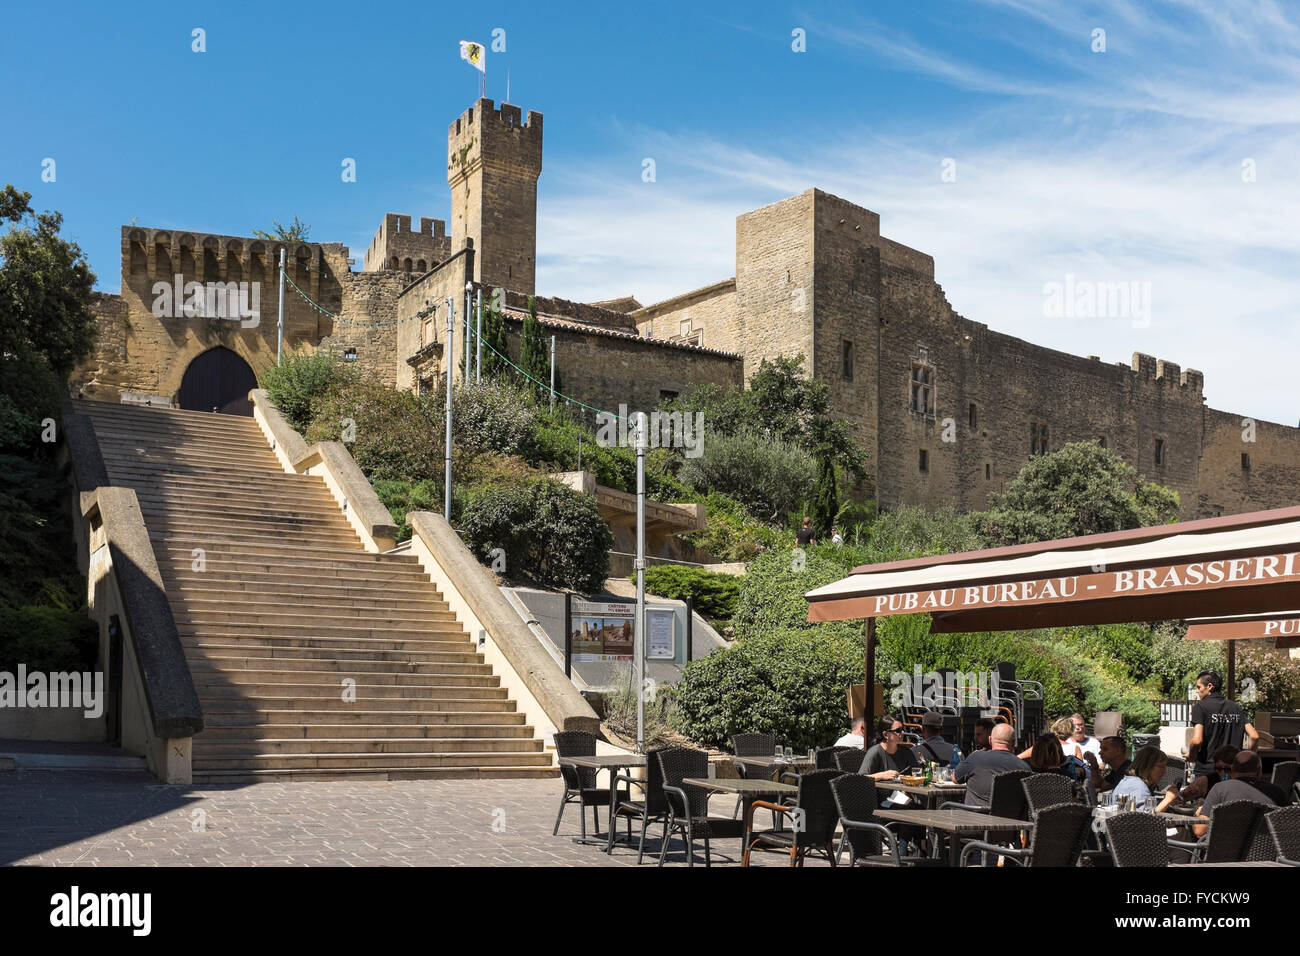 9c castle ch teau de l 39 emperi salon de provence bouches du rh ne stock photo royalty free - Departement salon de provence ...